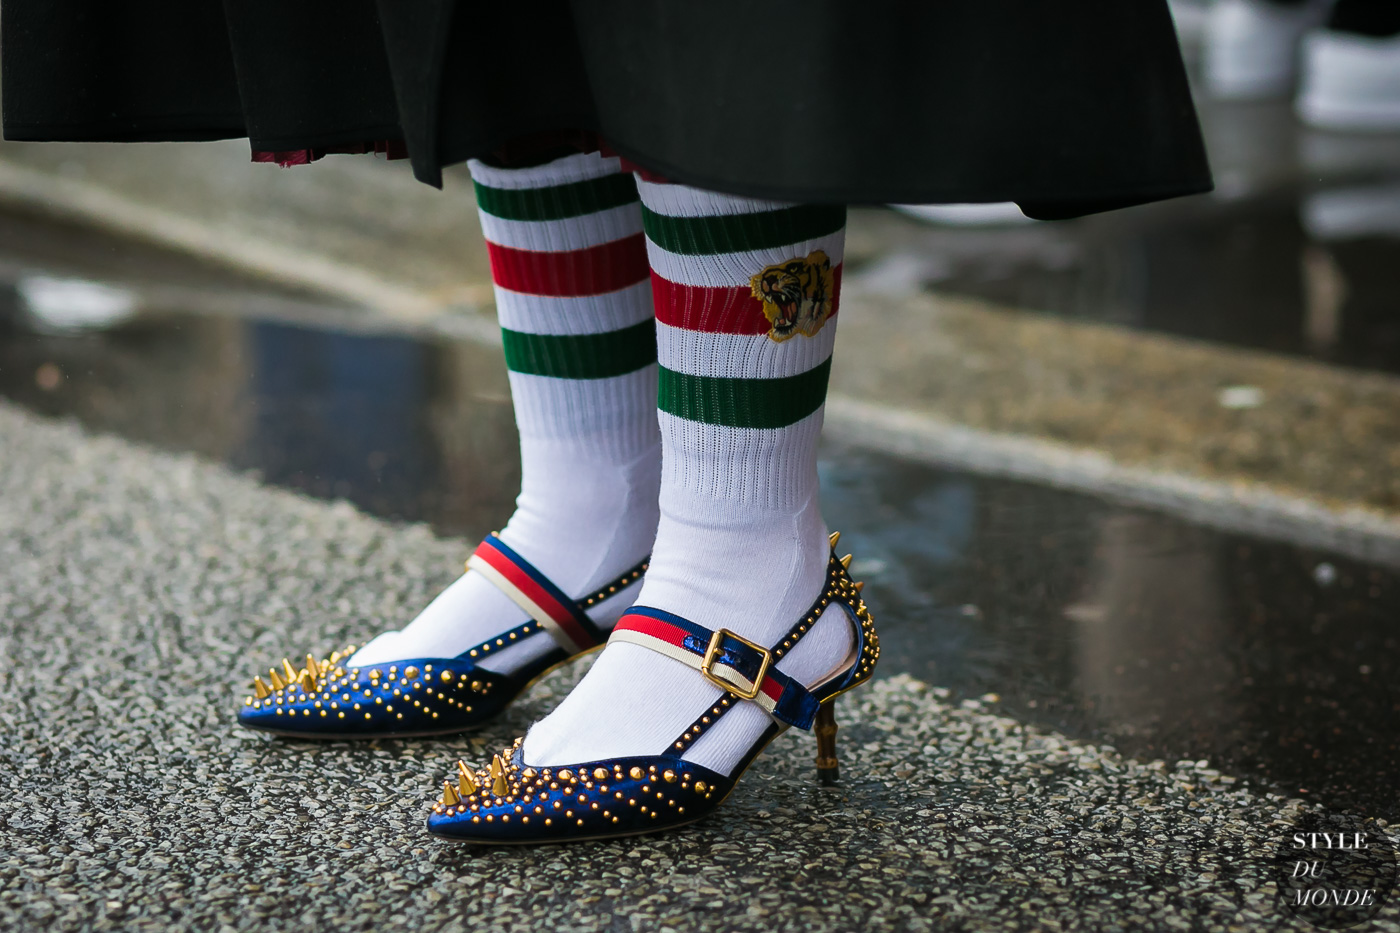 Gucci shoes and socks by STYLEDUMONDE Street Style Fashion Photography